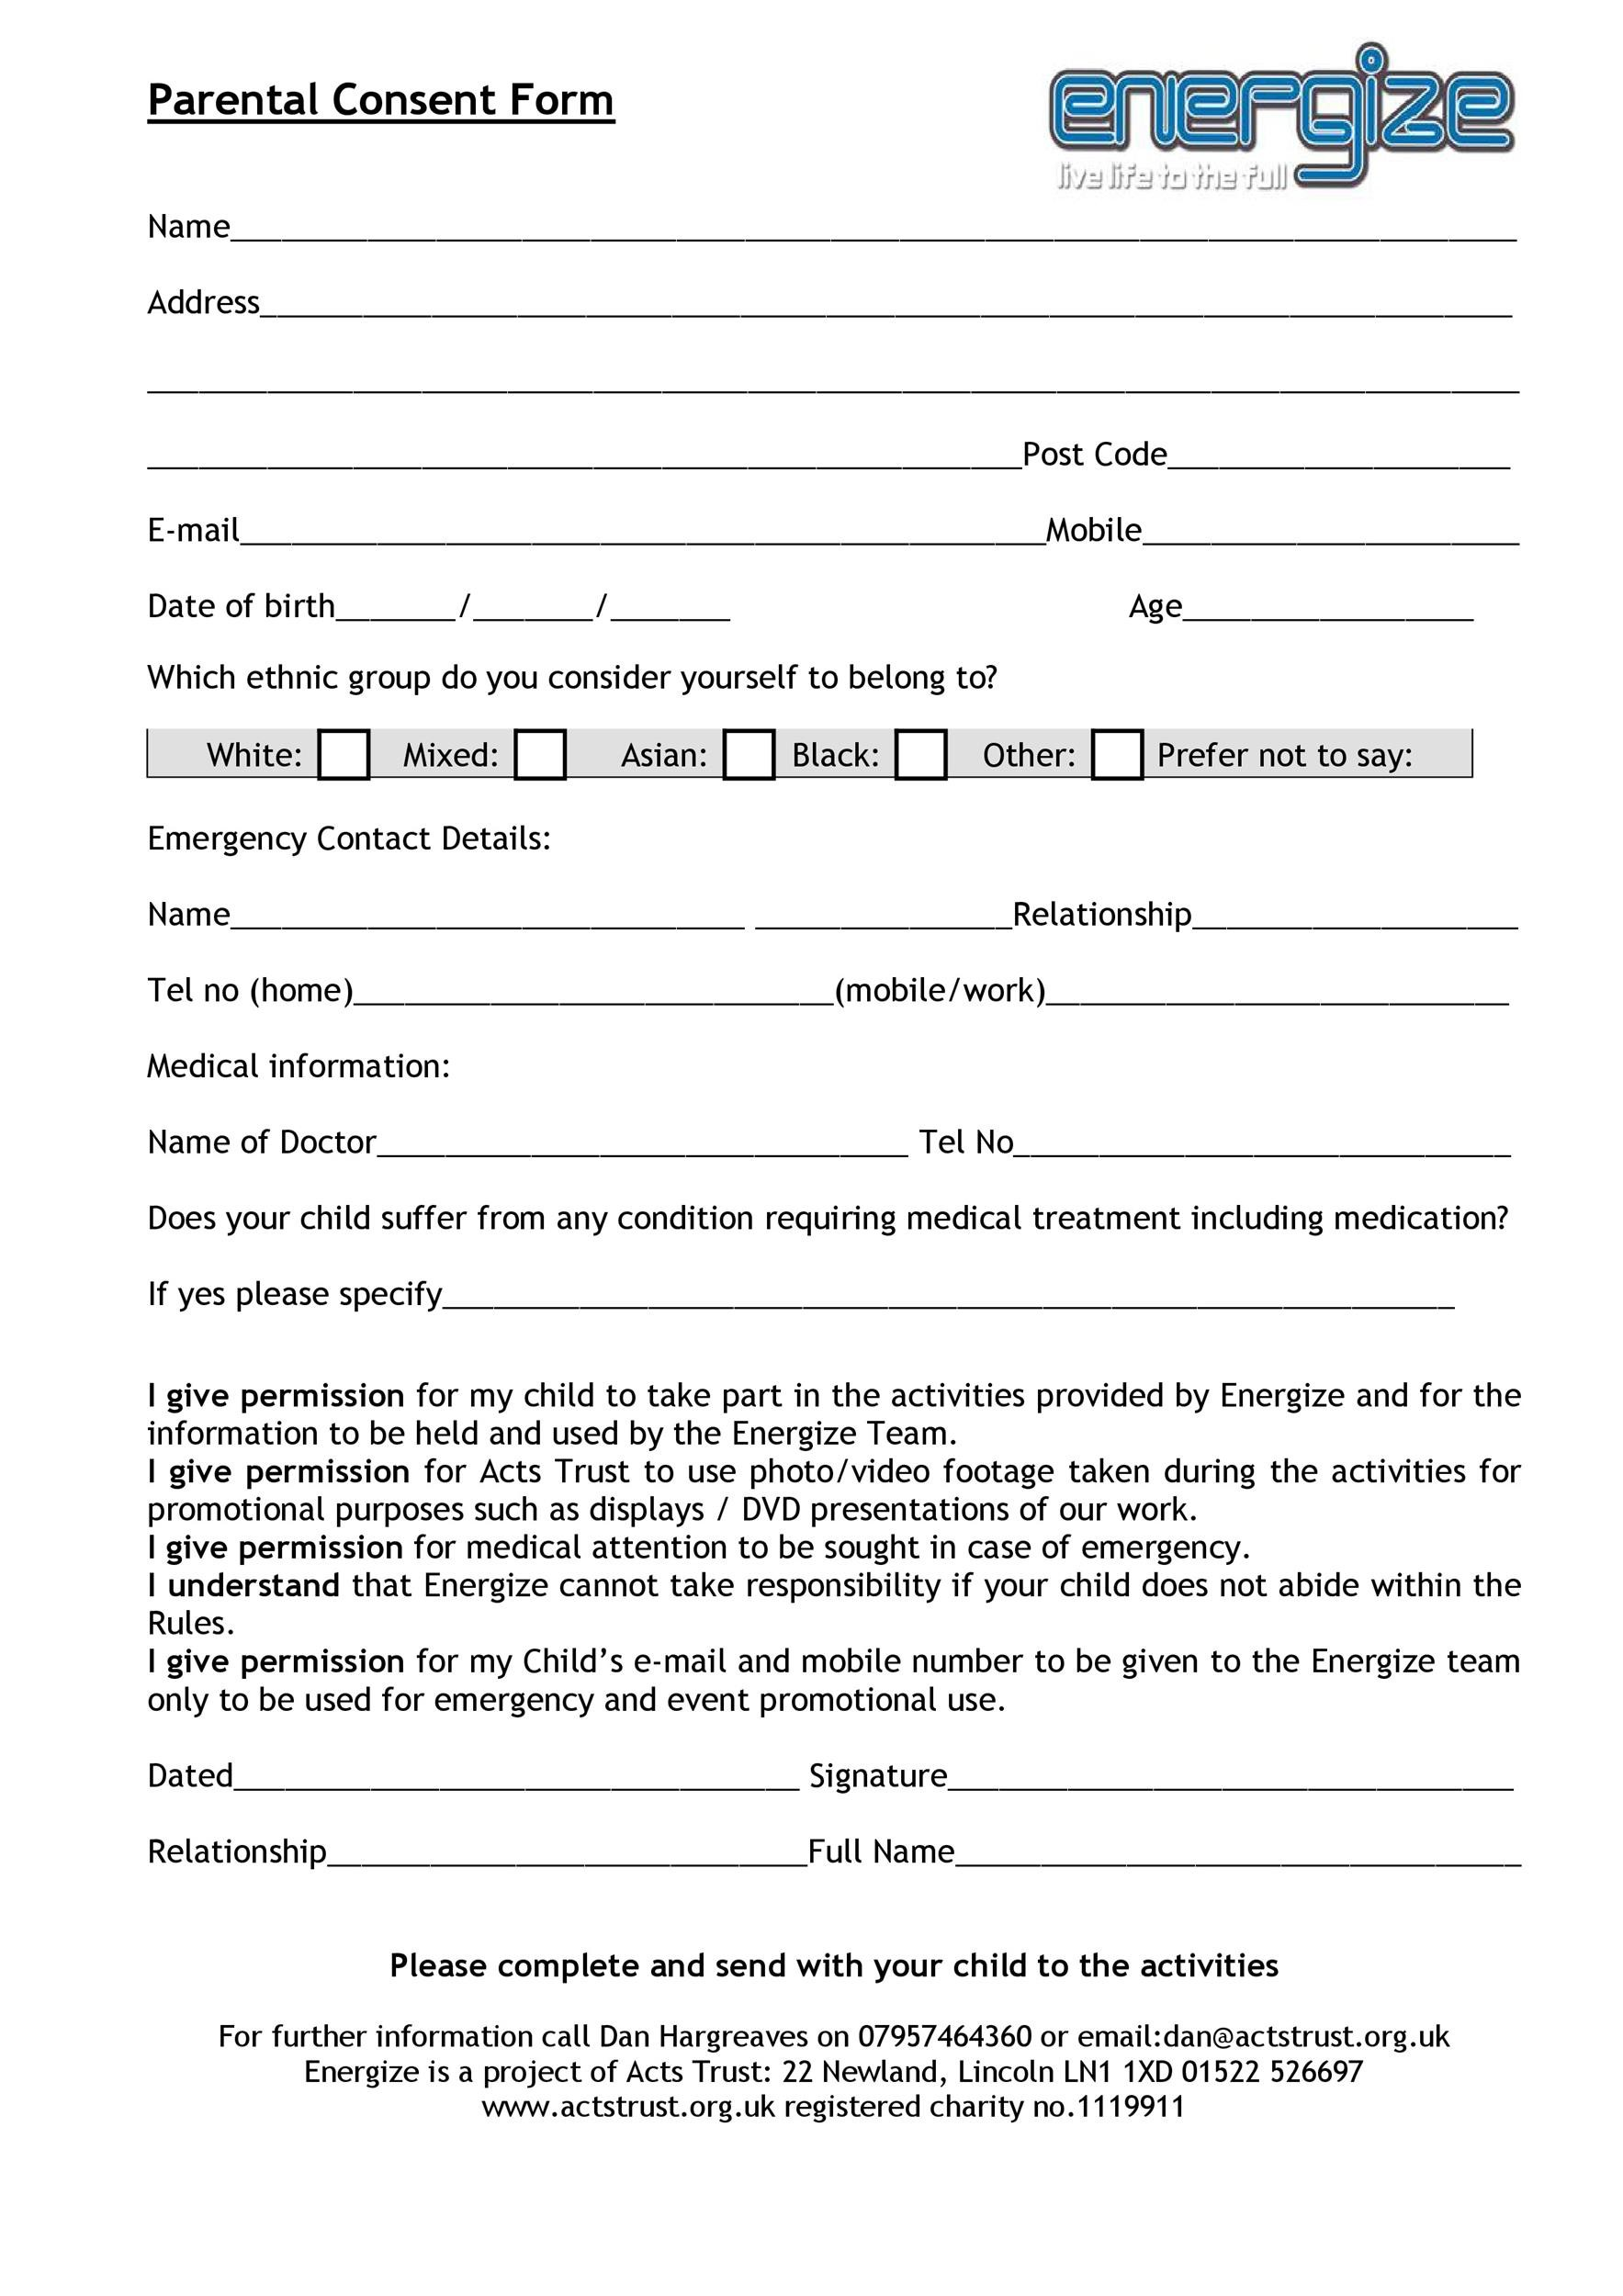 Free parental consent form template 02